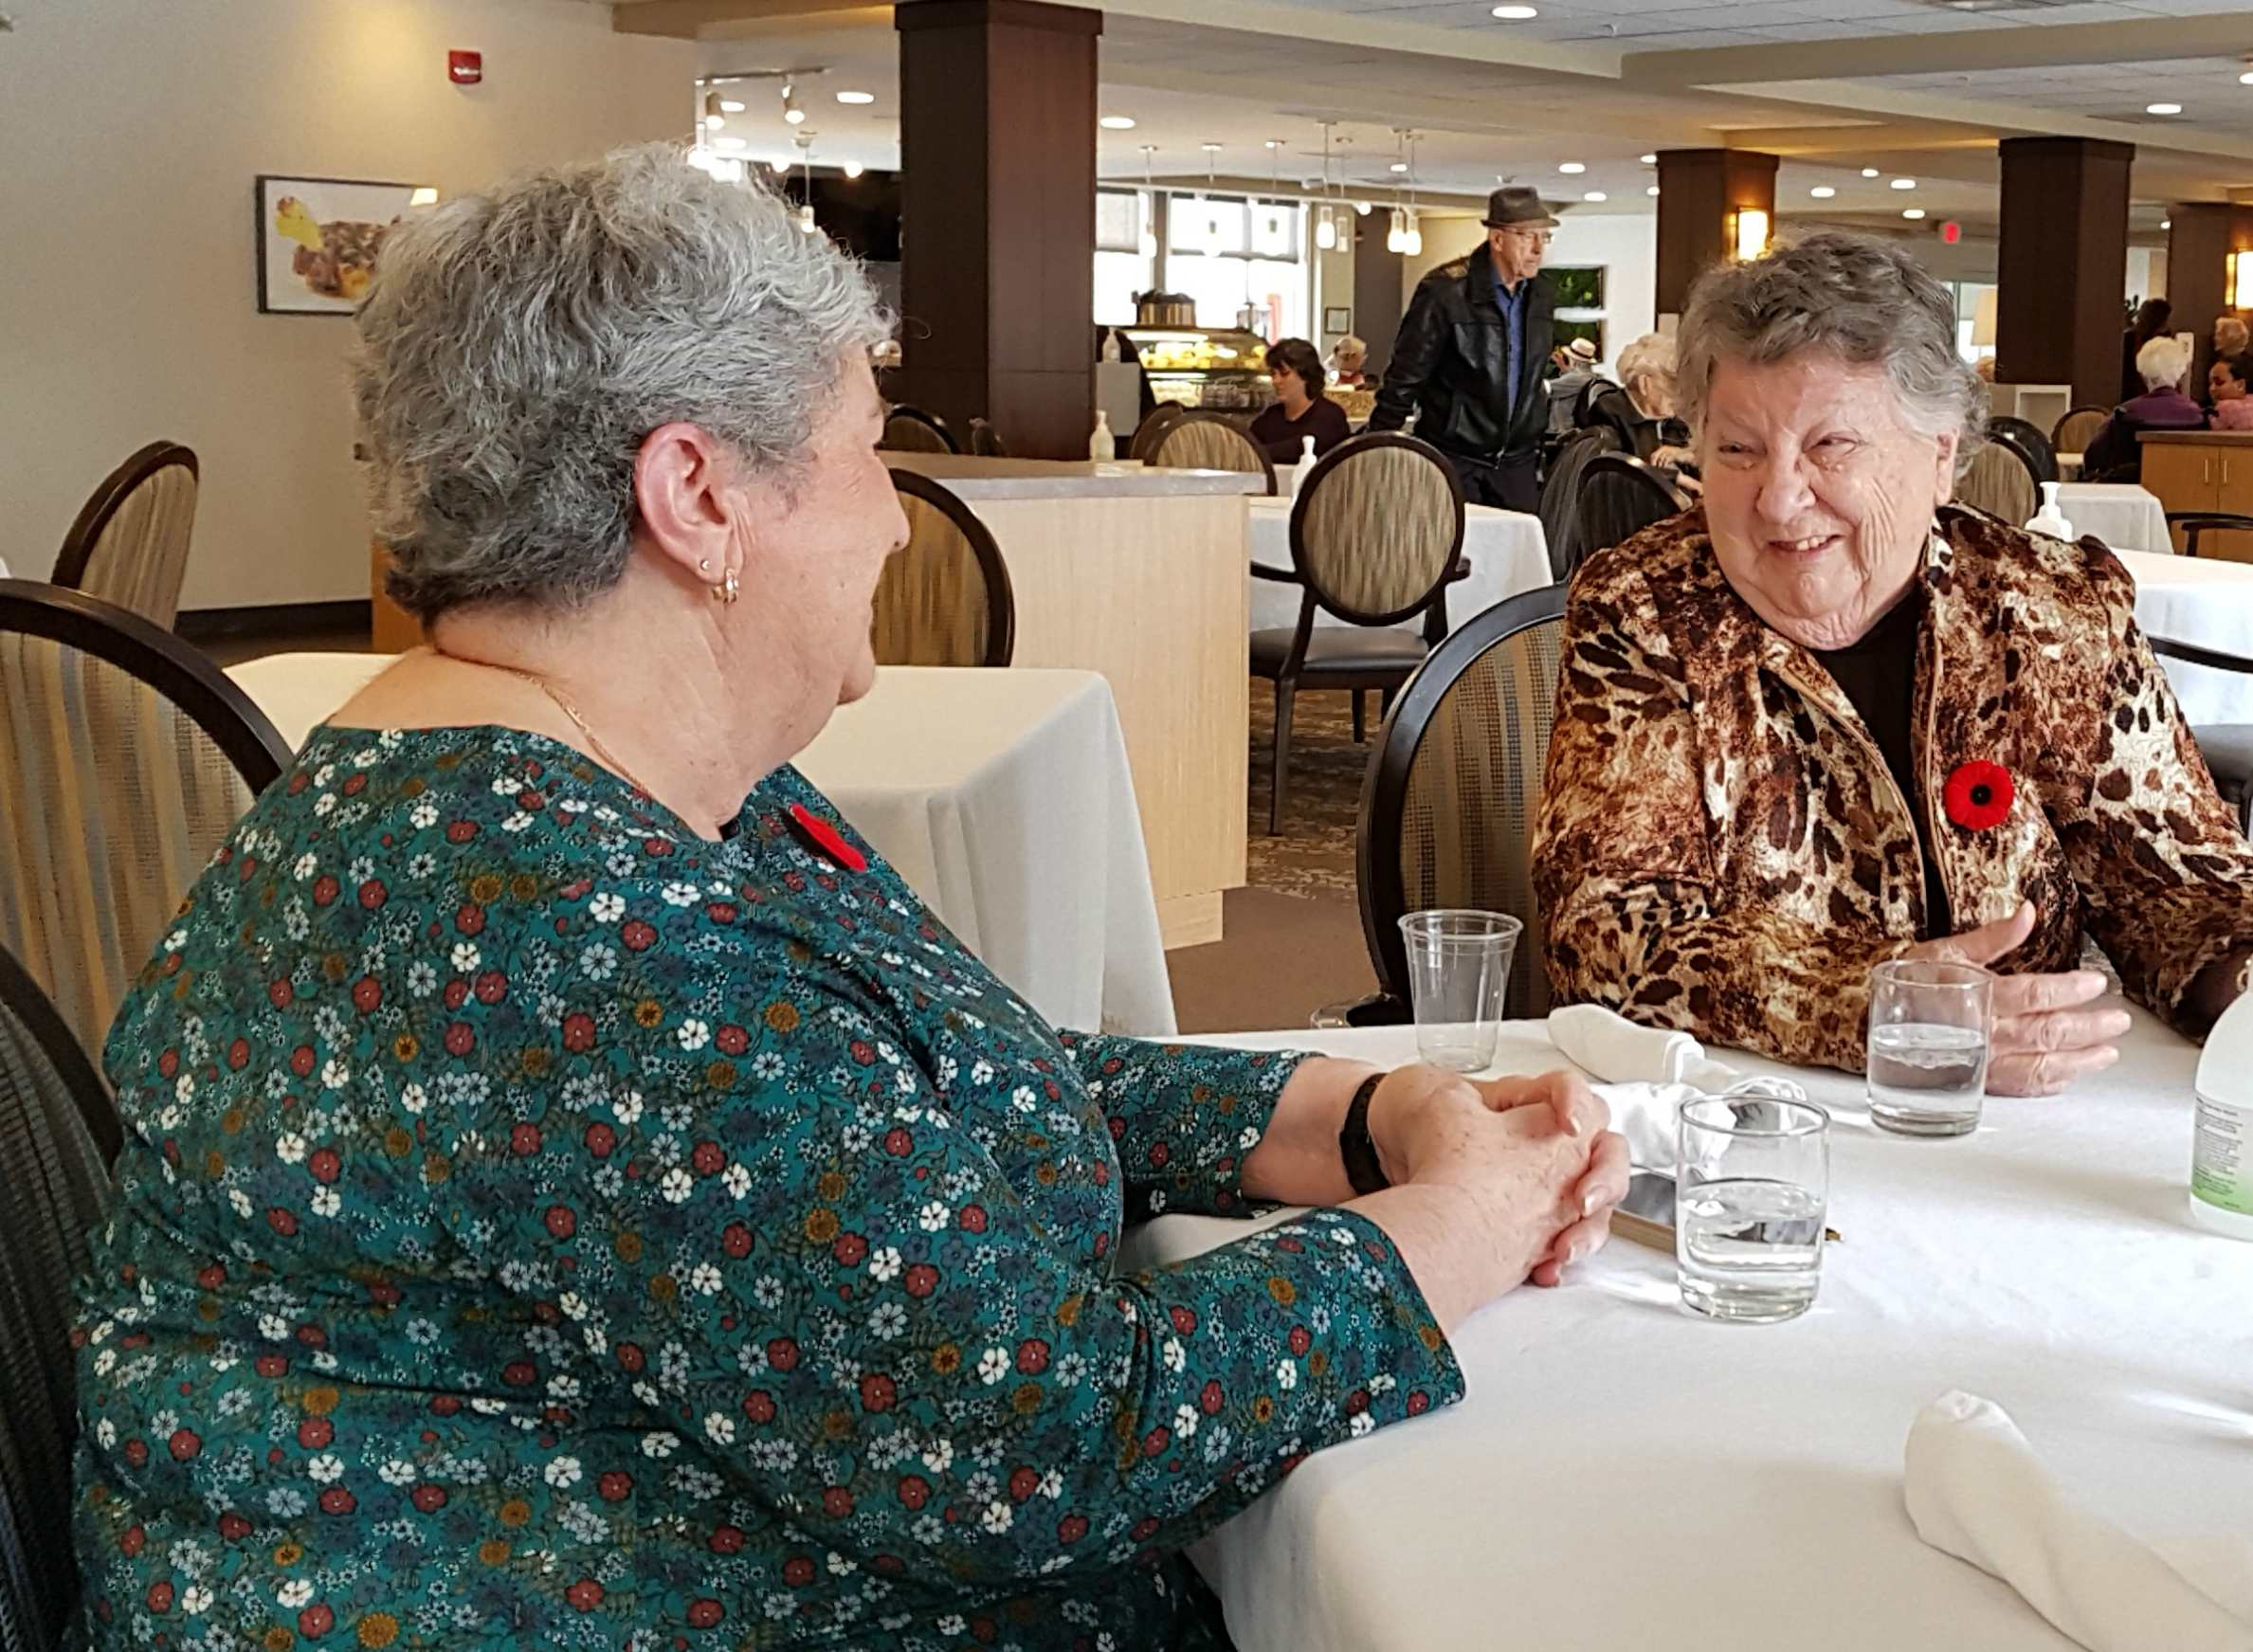 Joan Patterson, left, and Sheila Brinsmead share a laugh at lunch